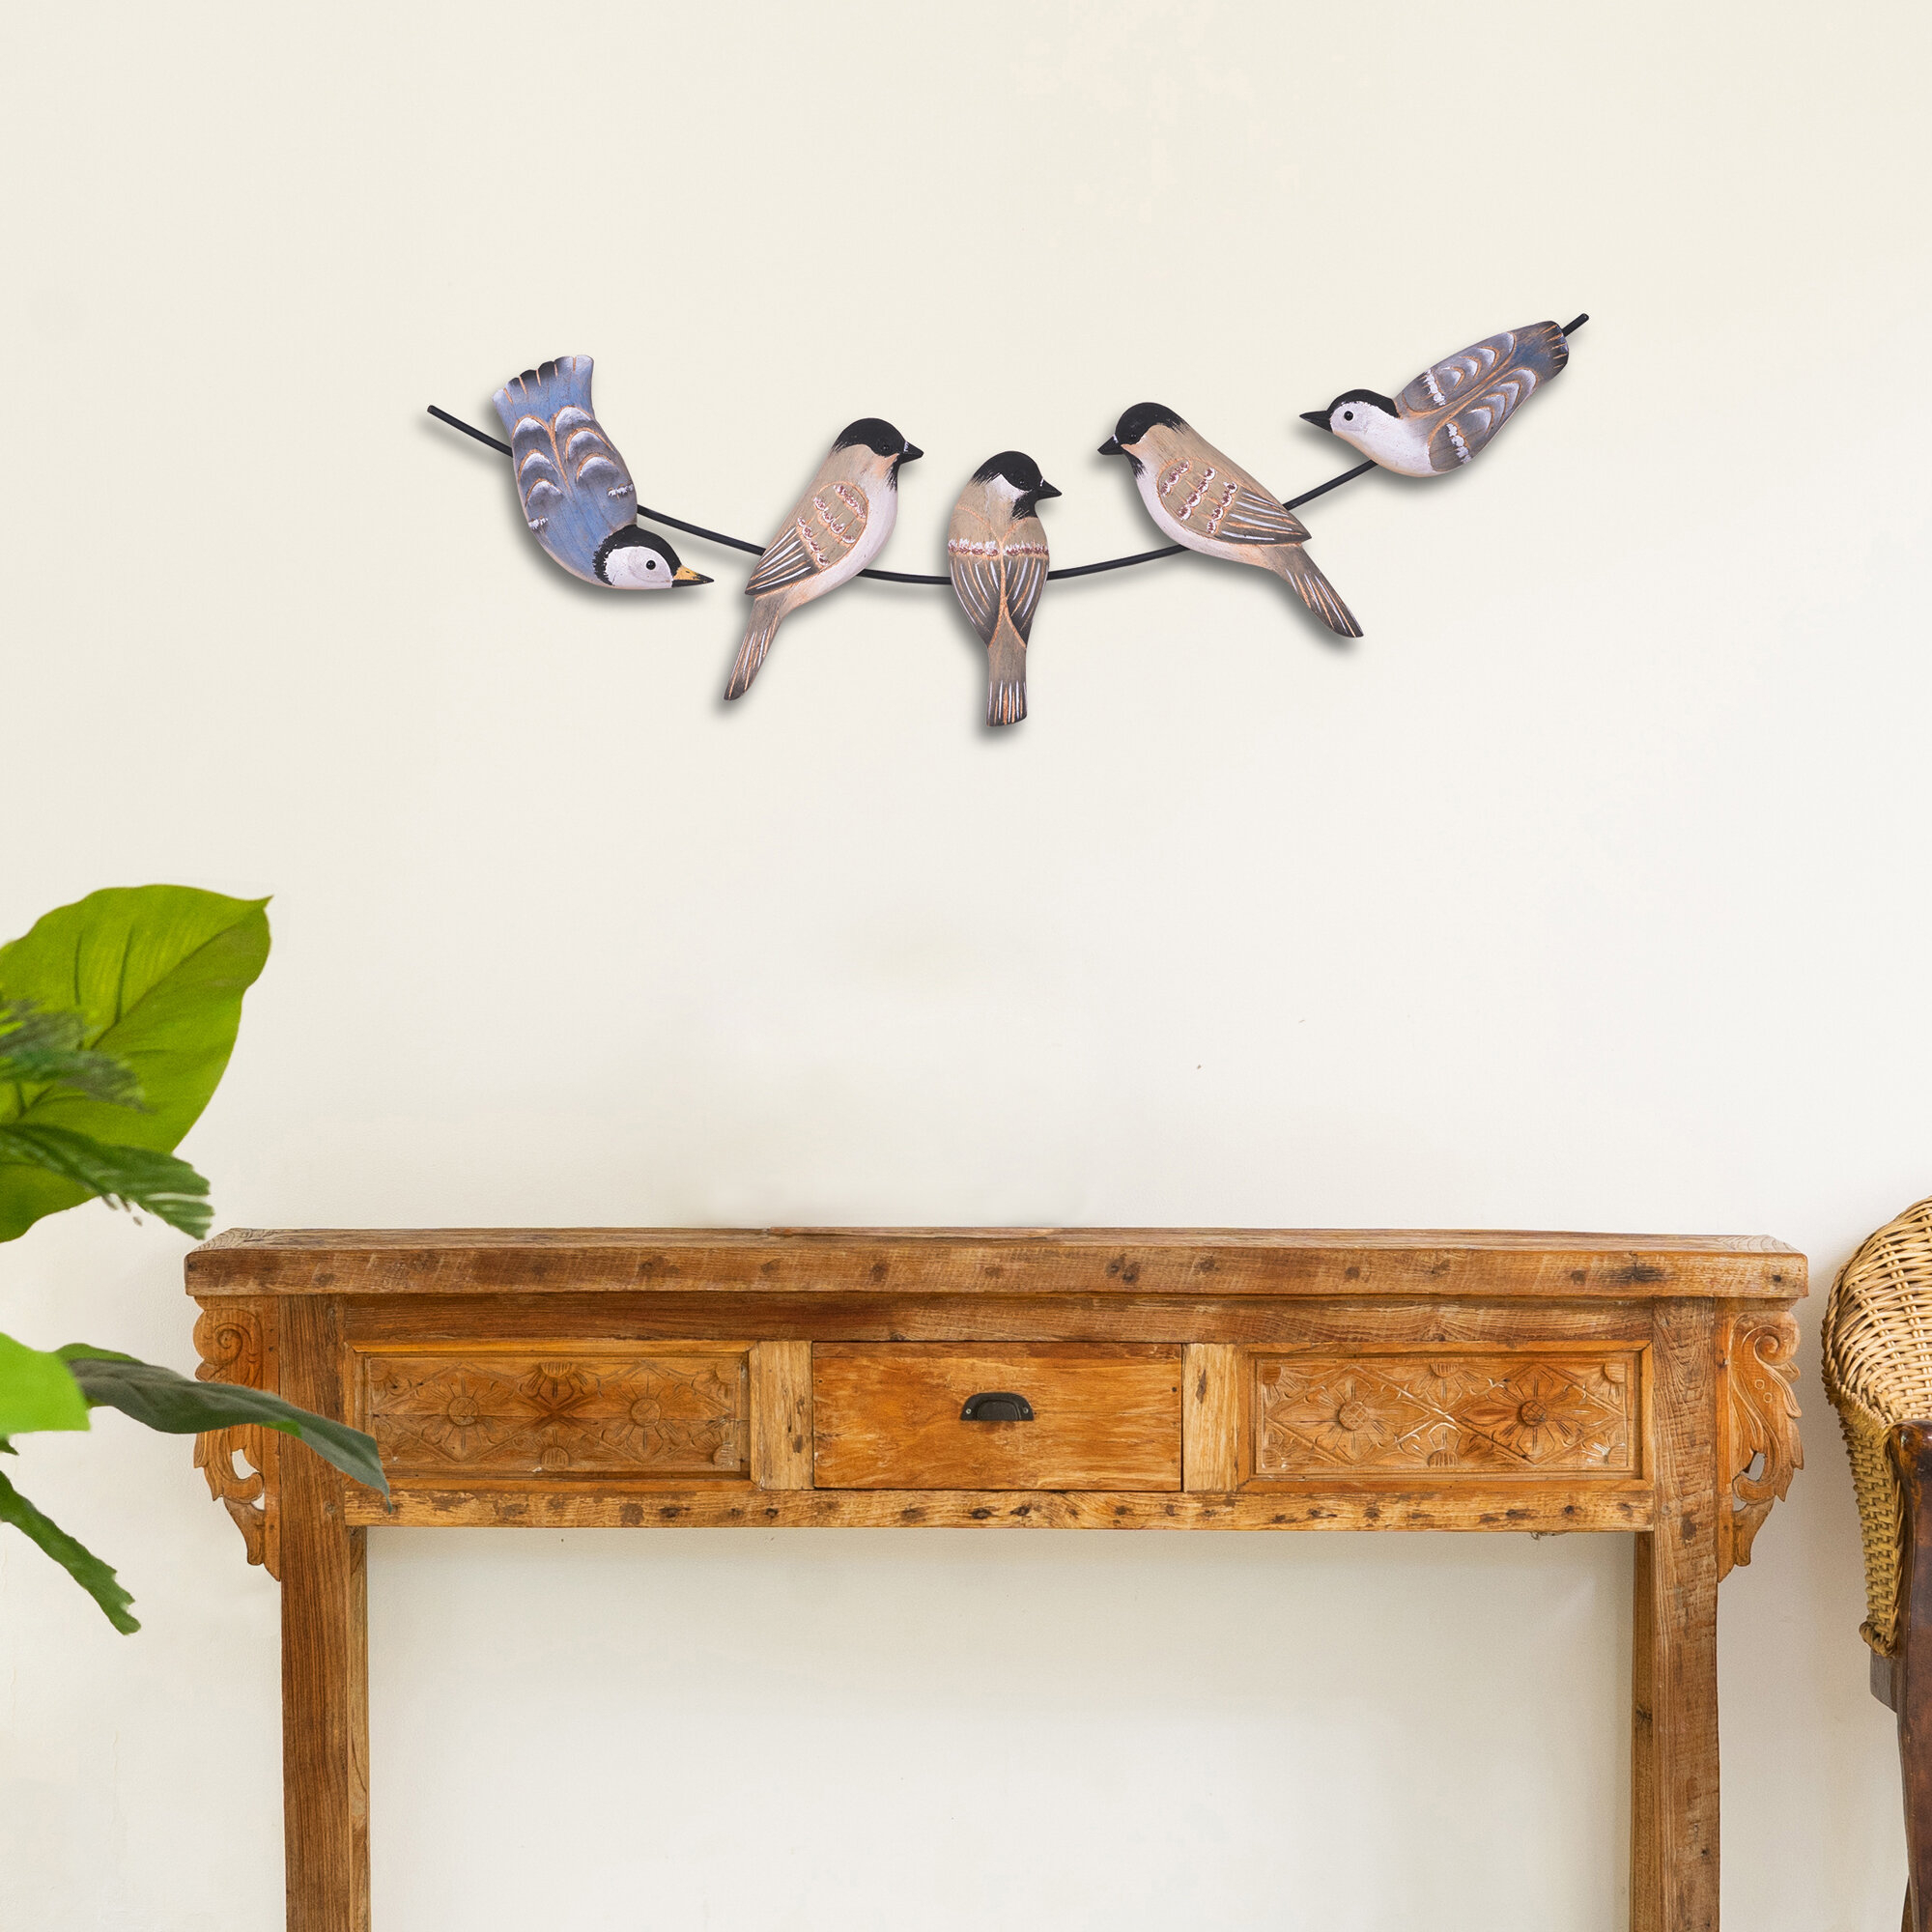 5 Birds On A Wire Wood Wall Décor throughout Birds On A Wire Wall Decor (Image 2 of 30)